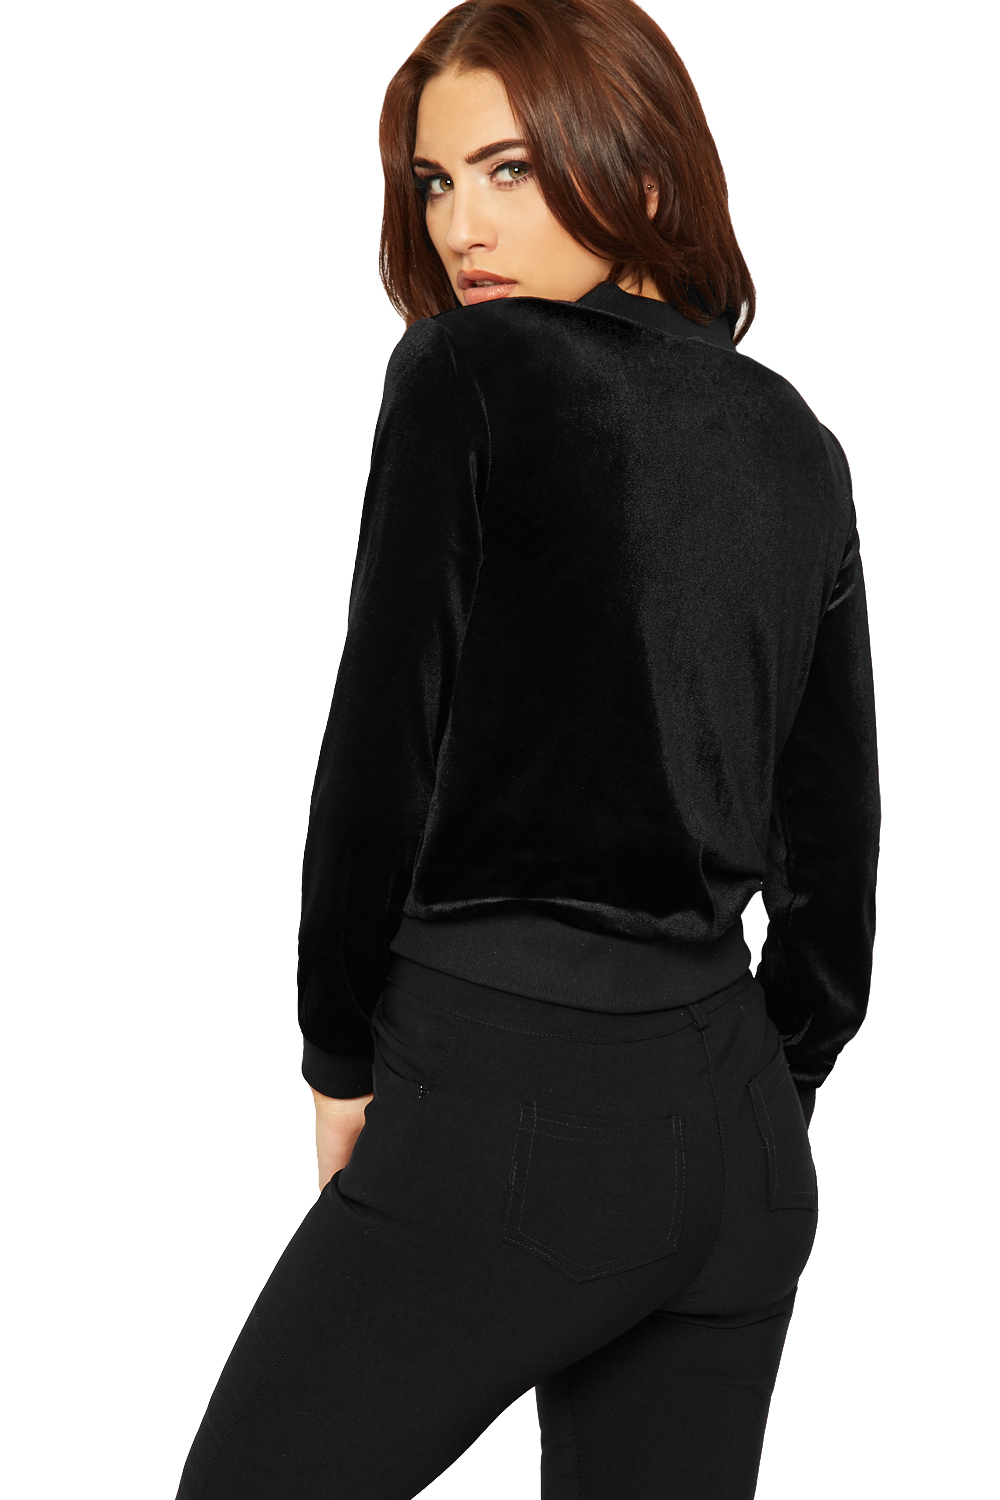 Find black velvet jacket women at ShopStyle. Shop the latest collection of black velvet jacket women from the most popular stores - all in one place.